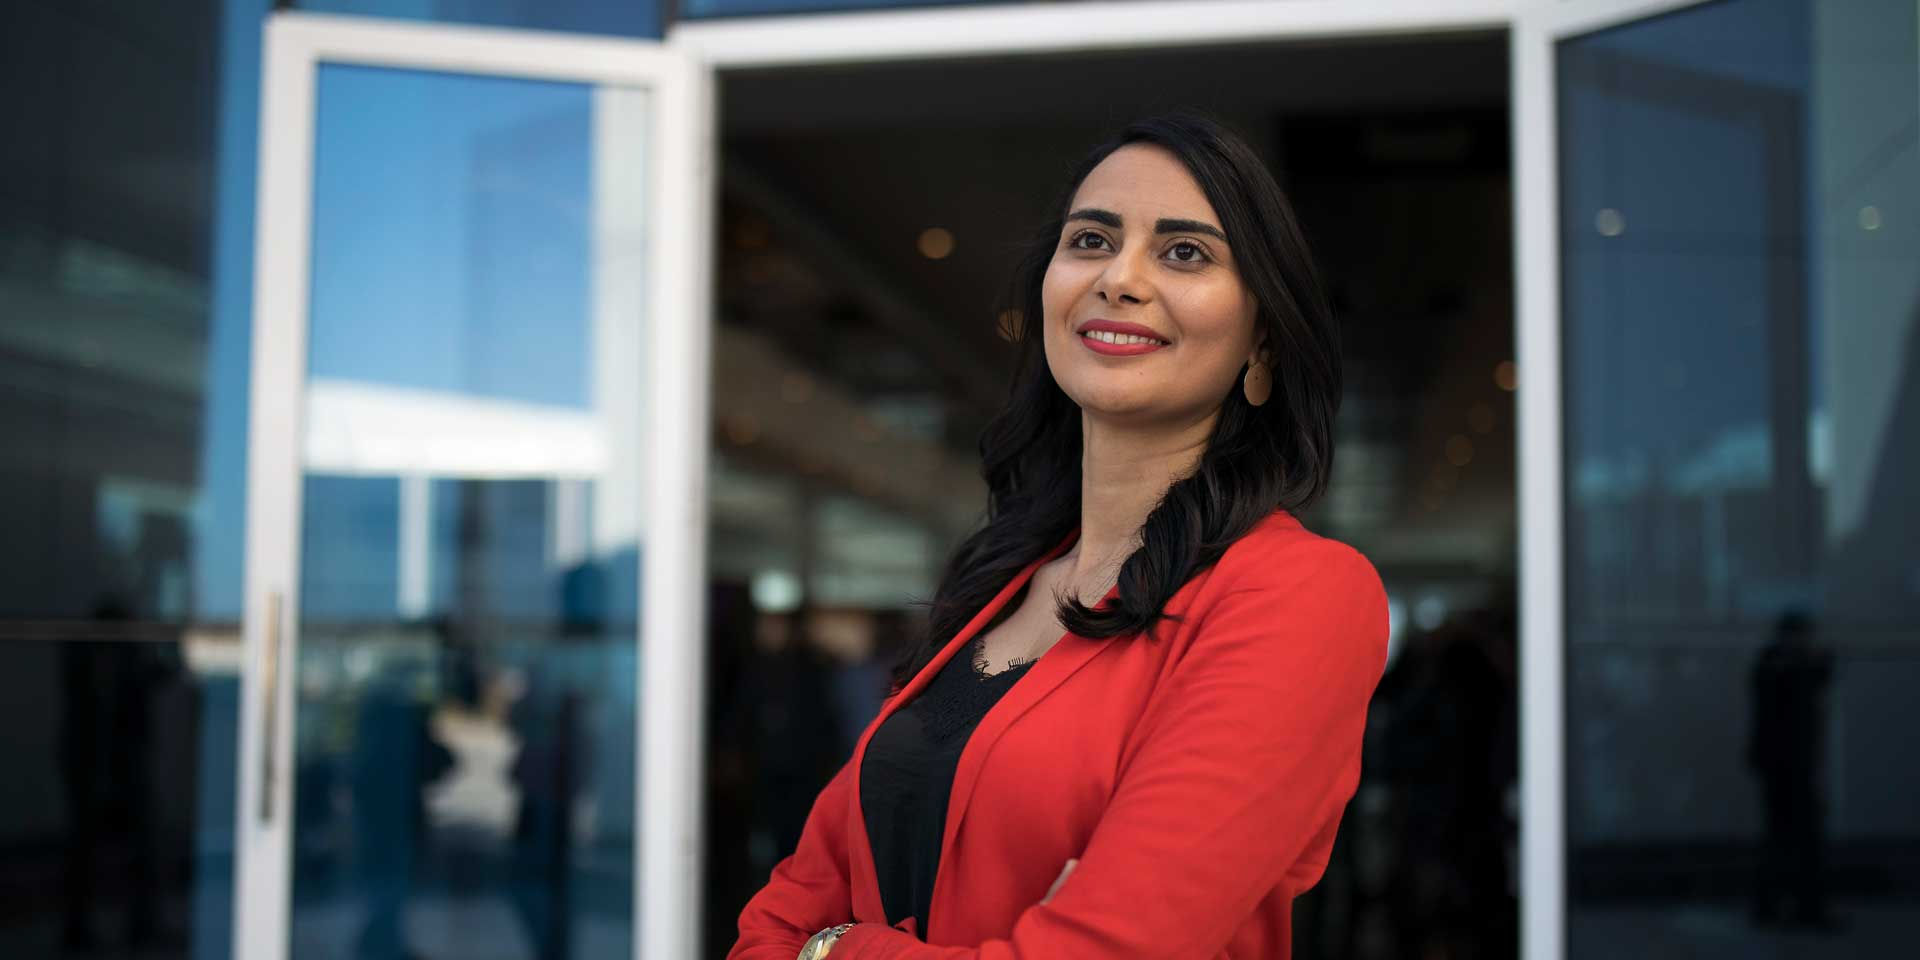 A Tunisian Entrepreneur Gets Dressed for Success